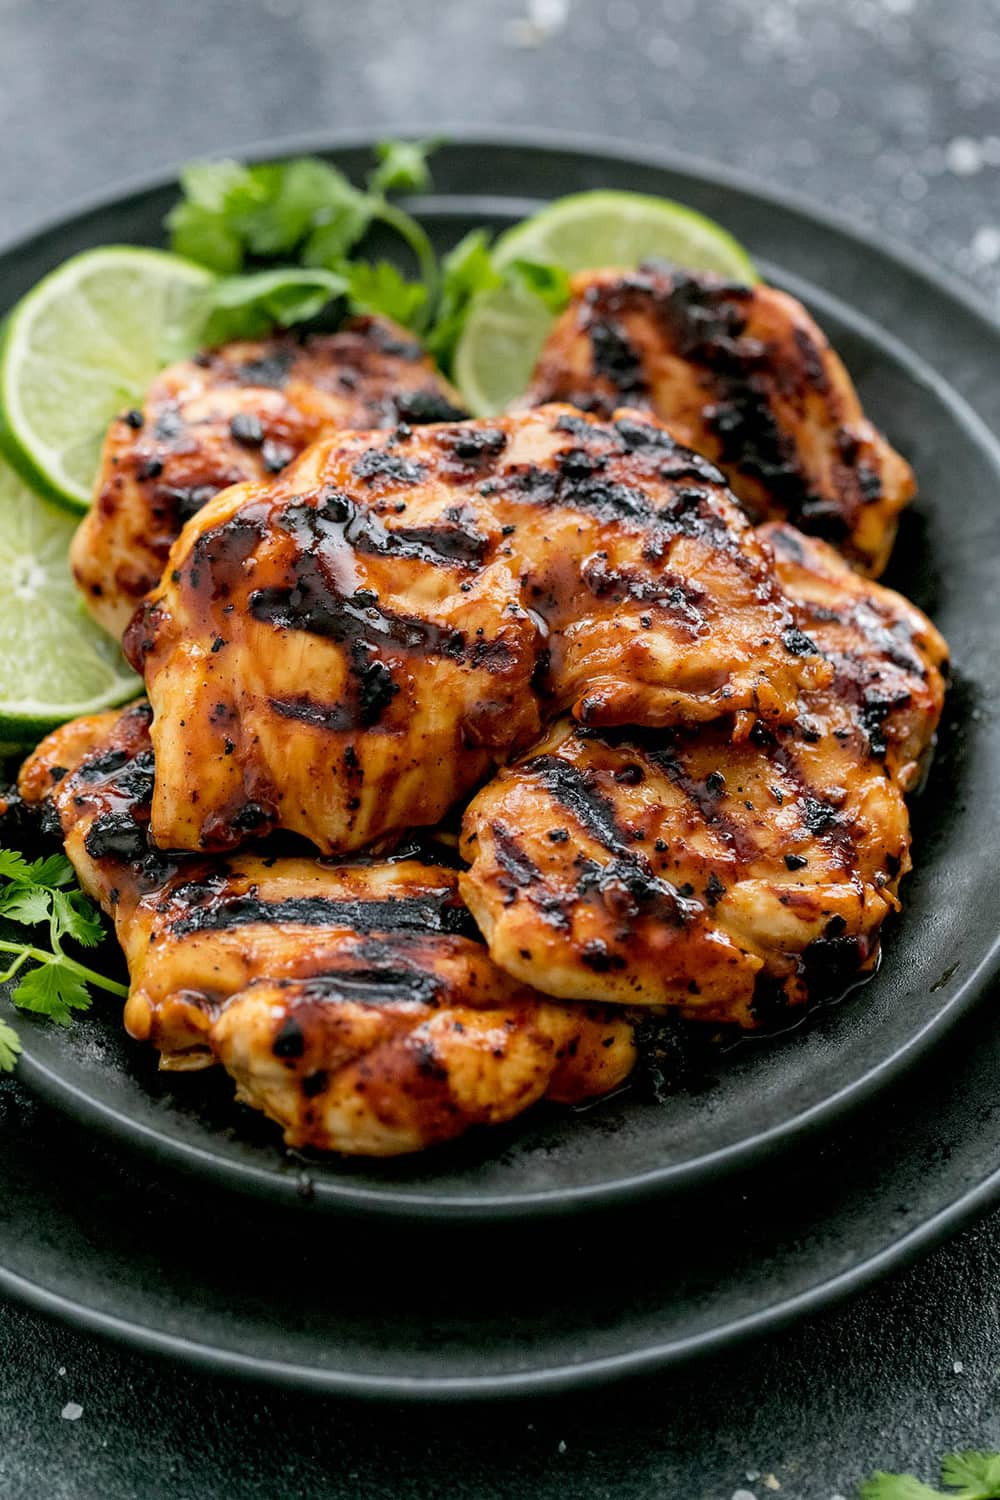 Chili Lime Chicken Recipe  Grilled Chili Lime Chicken